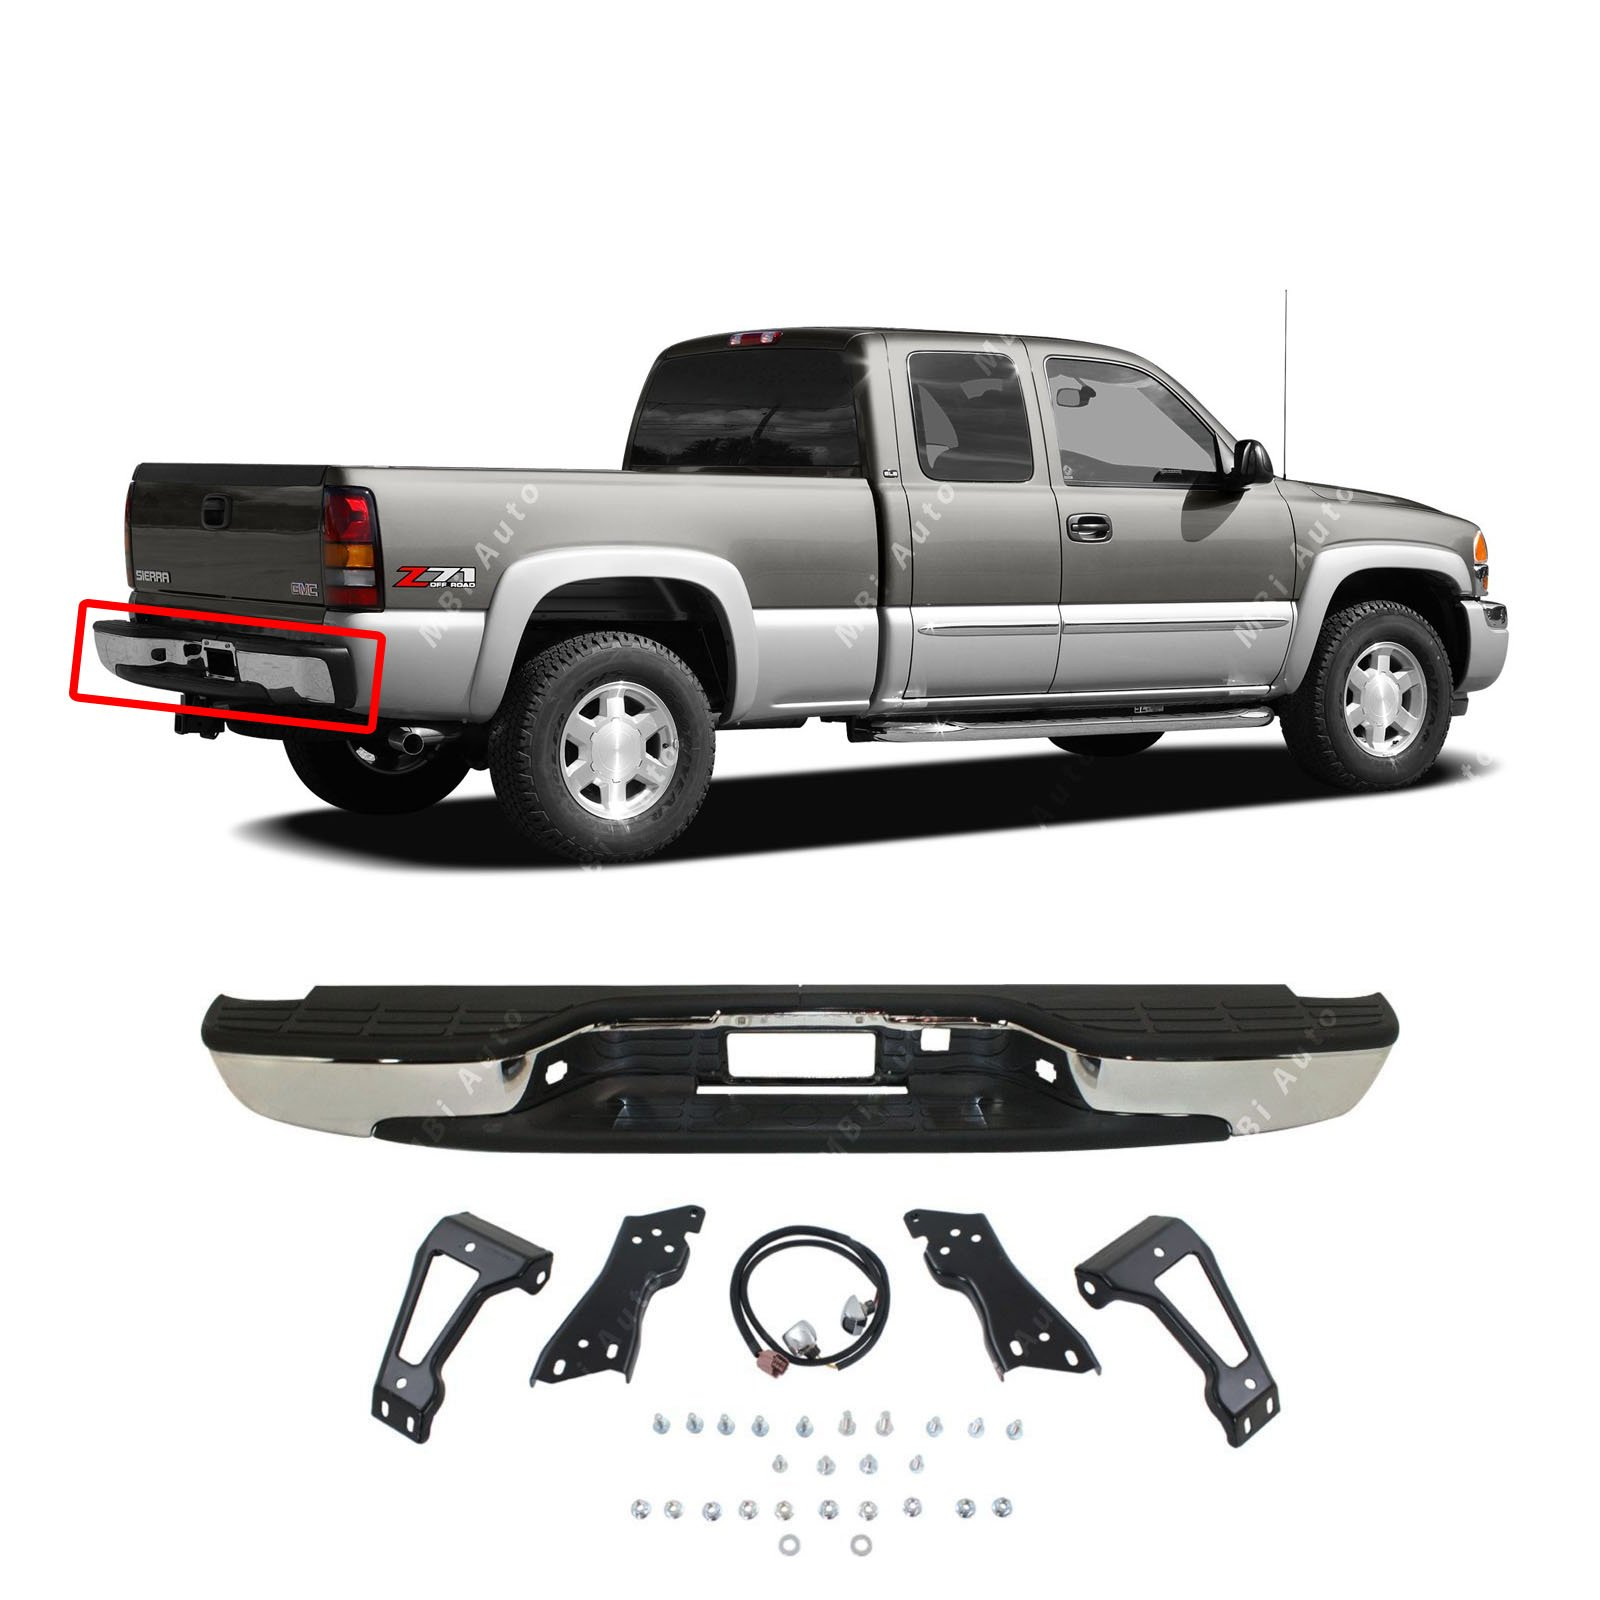 MBI AUTO - NEW Complete Chrome Rear Step Bumper Assembly For 1999-2006 Chevy Silverado GMC Sierra 1500 Truck GM1103122